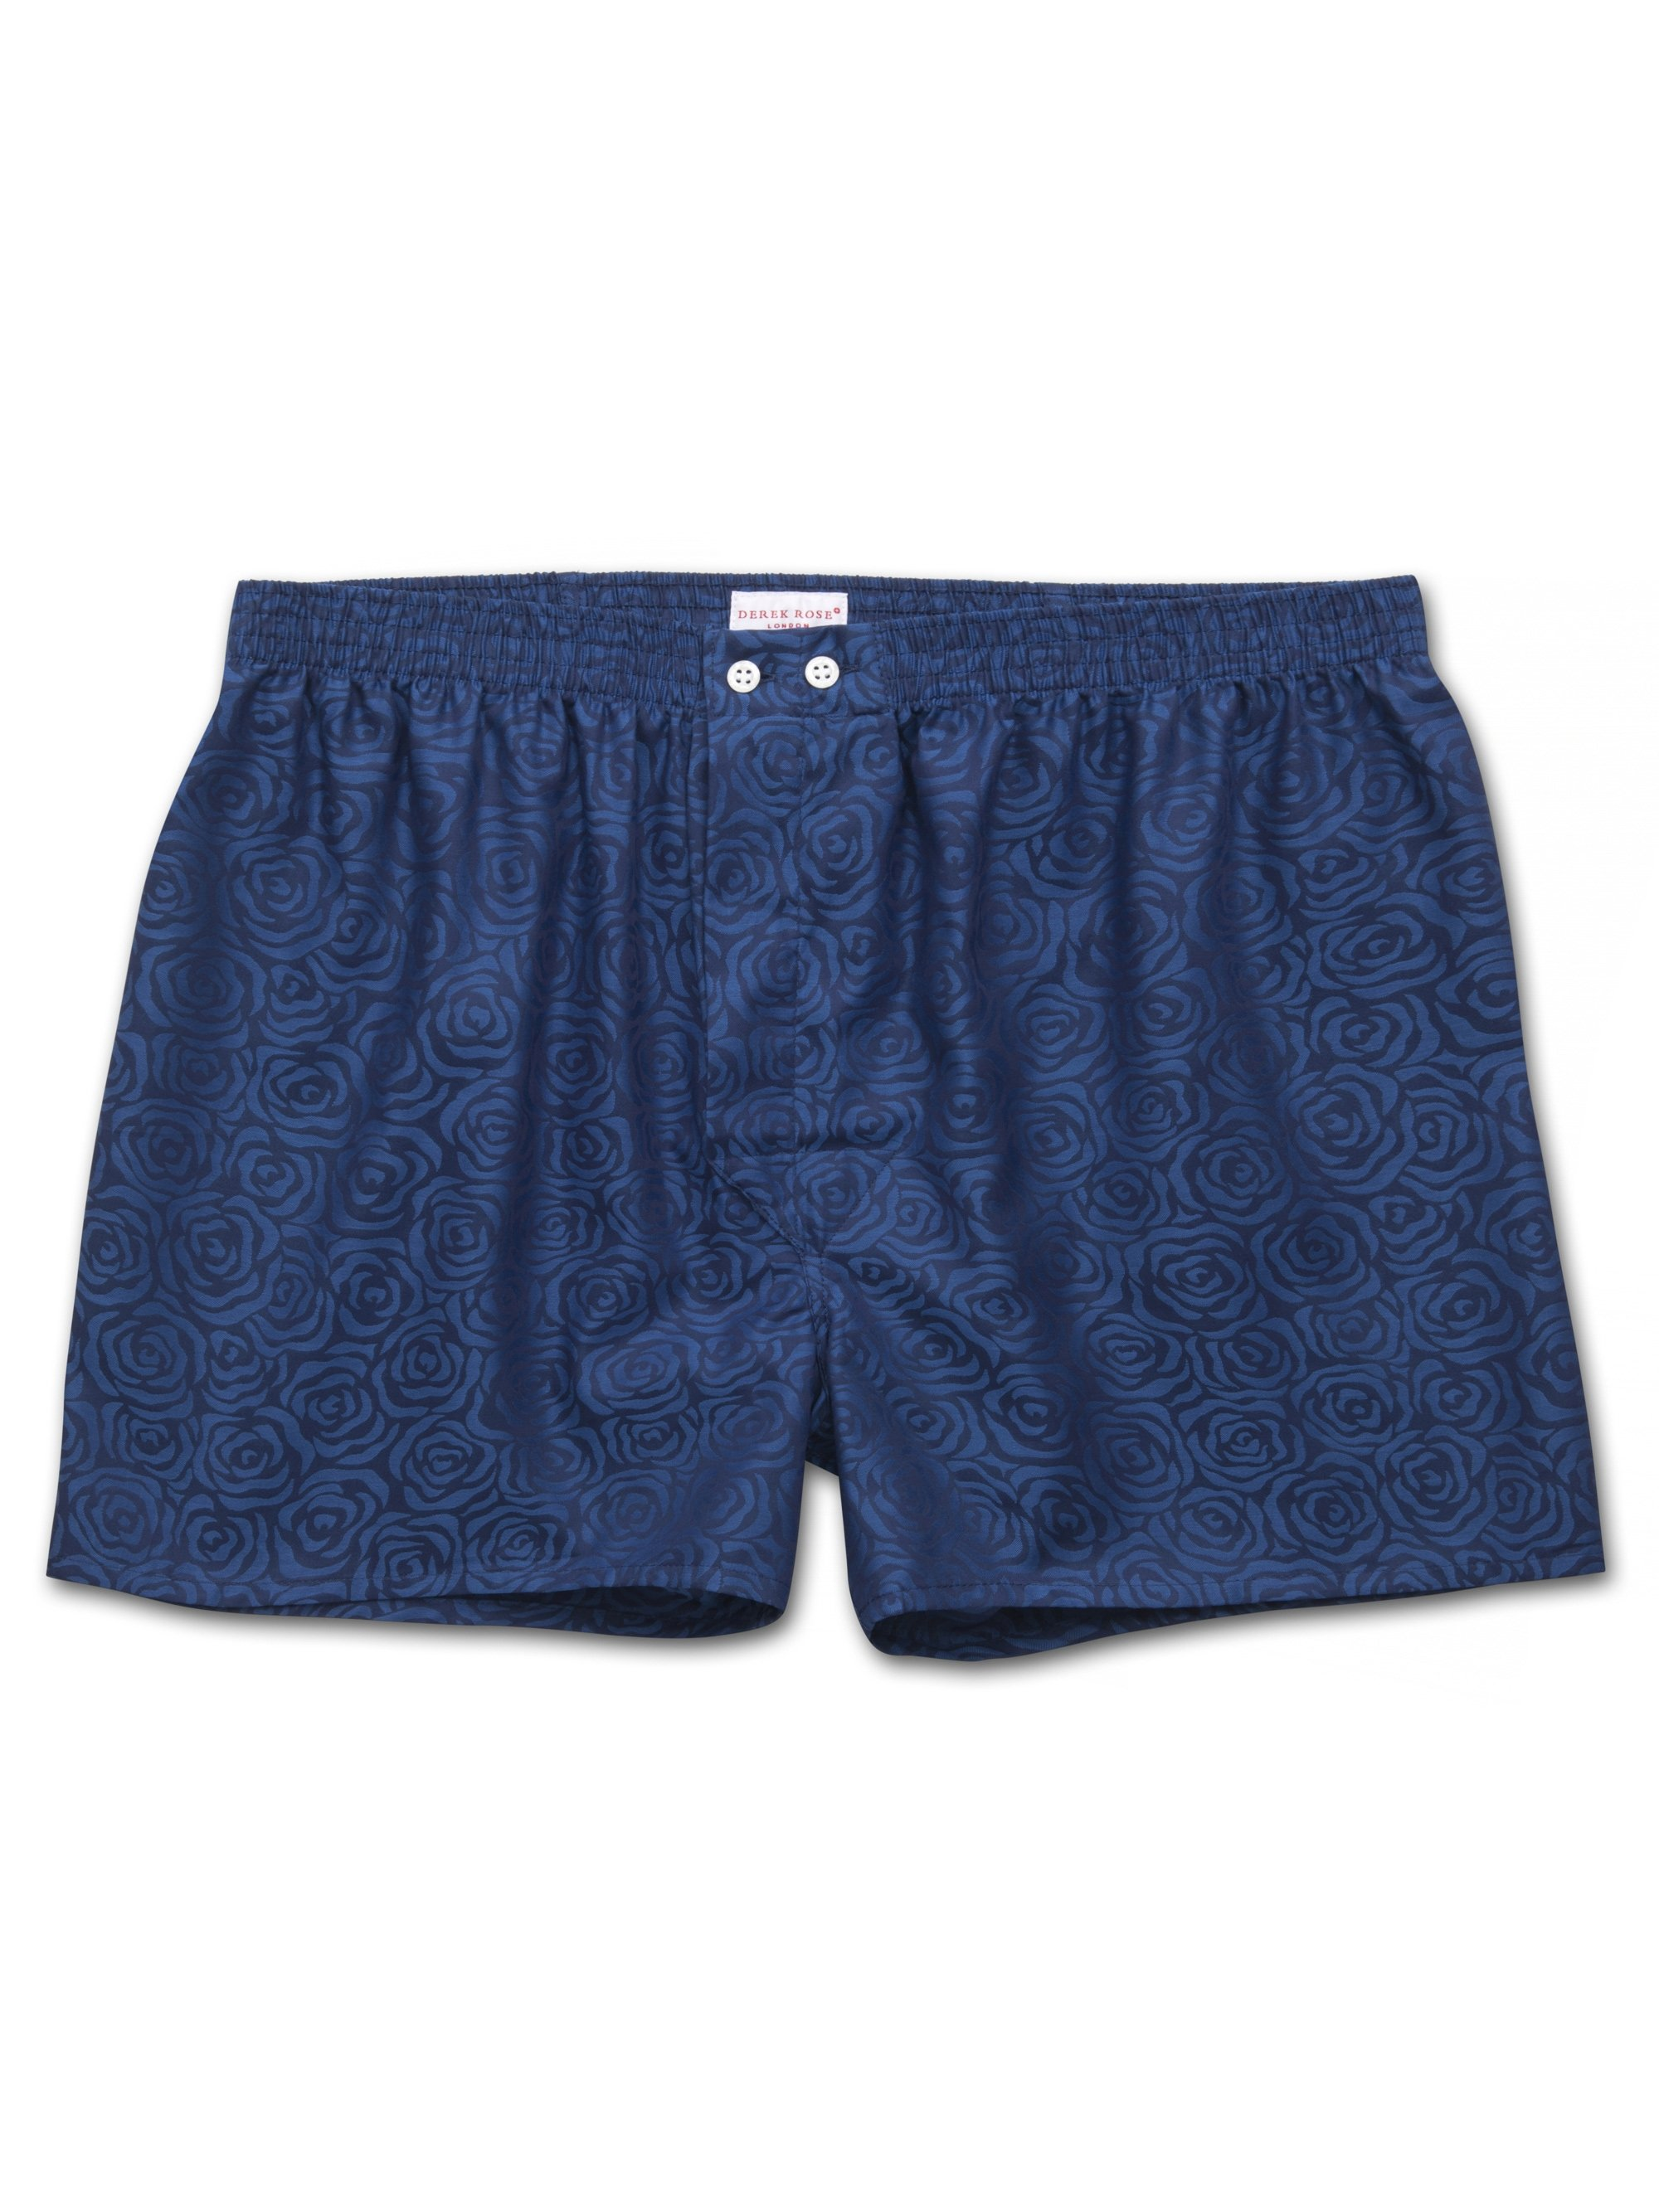 Men's Classic Fit Boxer Shorts Paris 17 Cotton Jacquard Navy